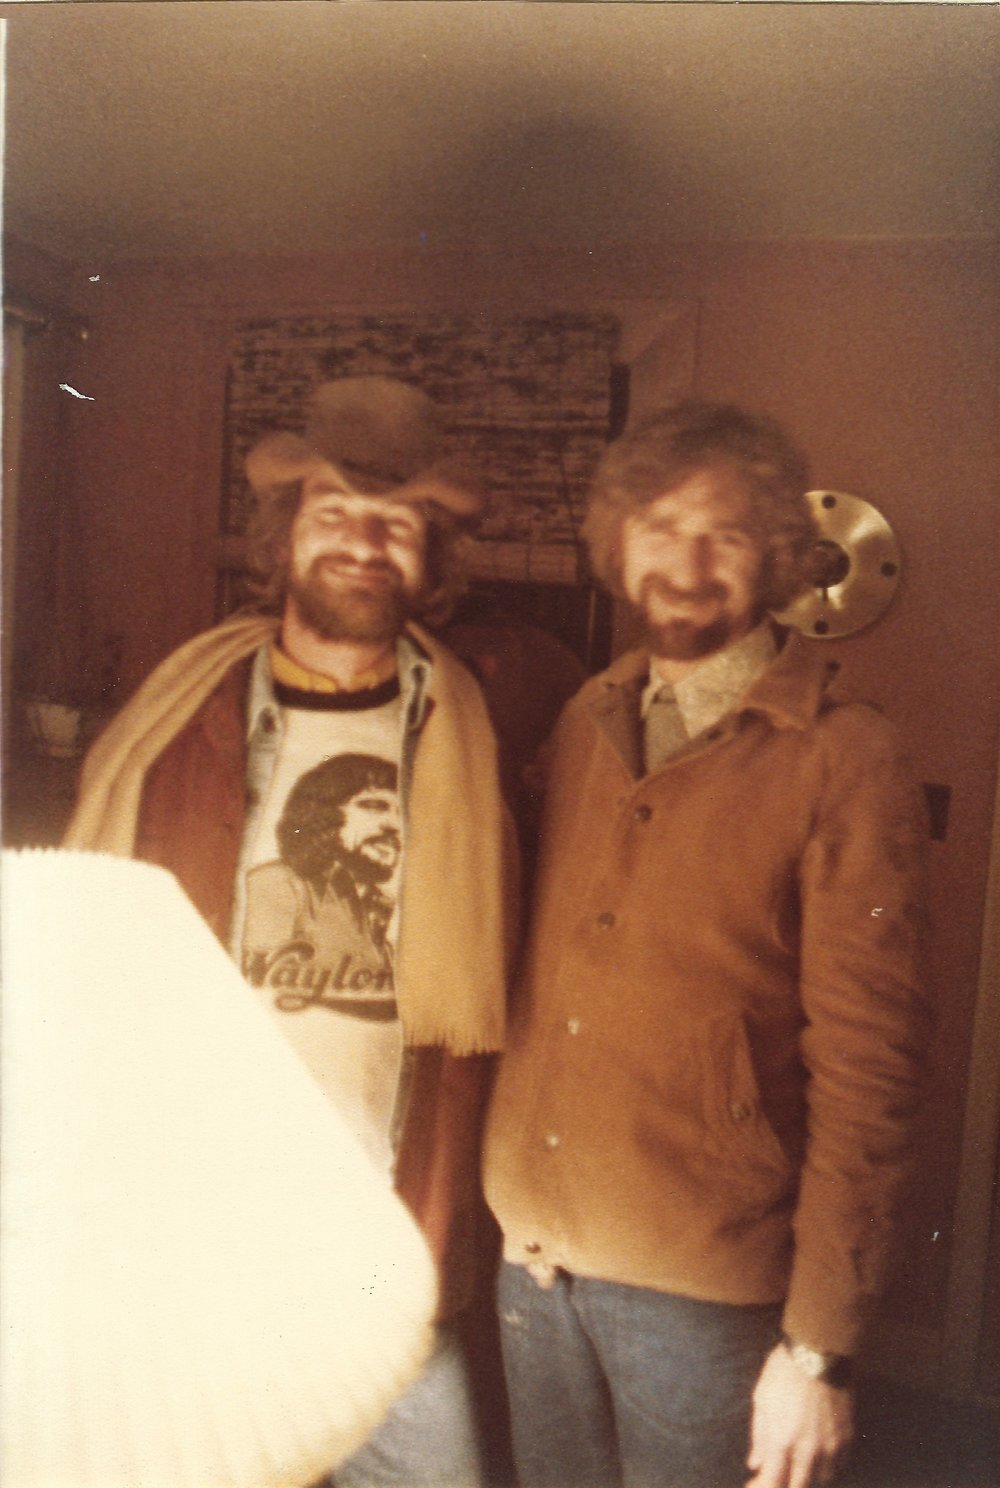 Donnie Fritts & Spooner Olham 2.jpeg